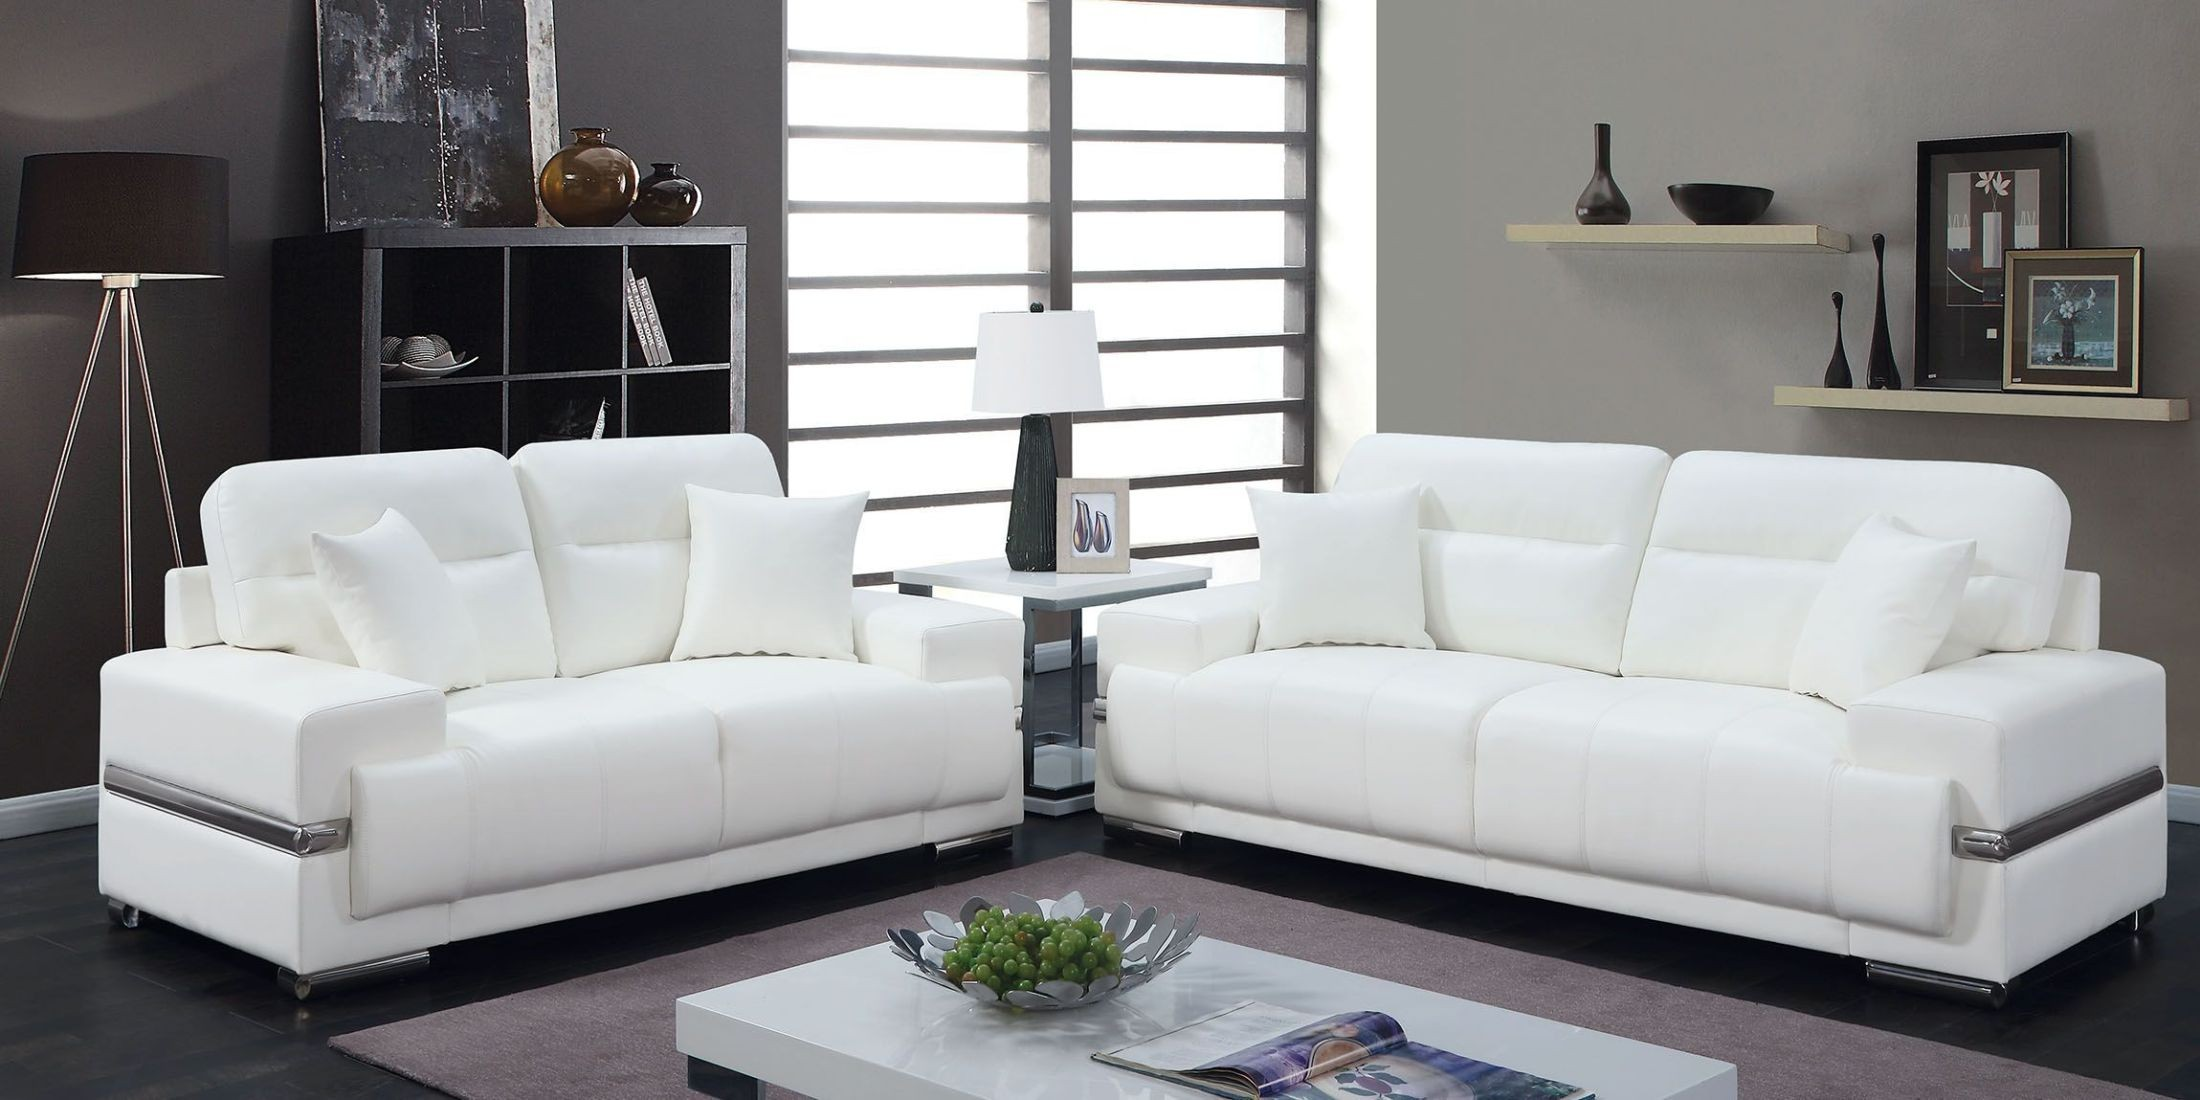 Zibak White Living Room Set From Furniture Of America